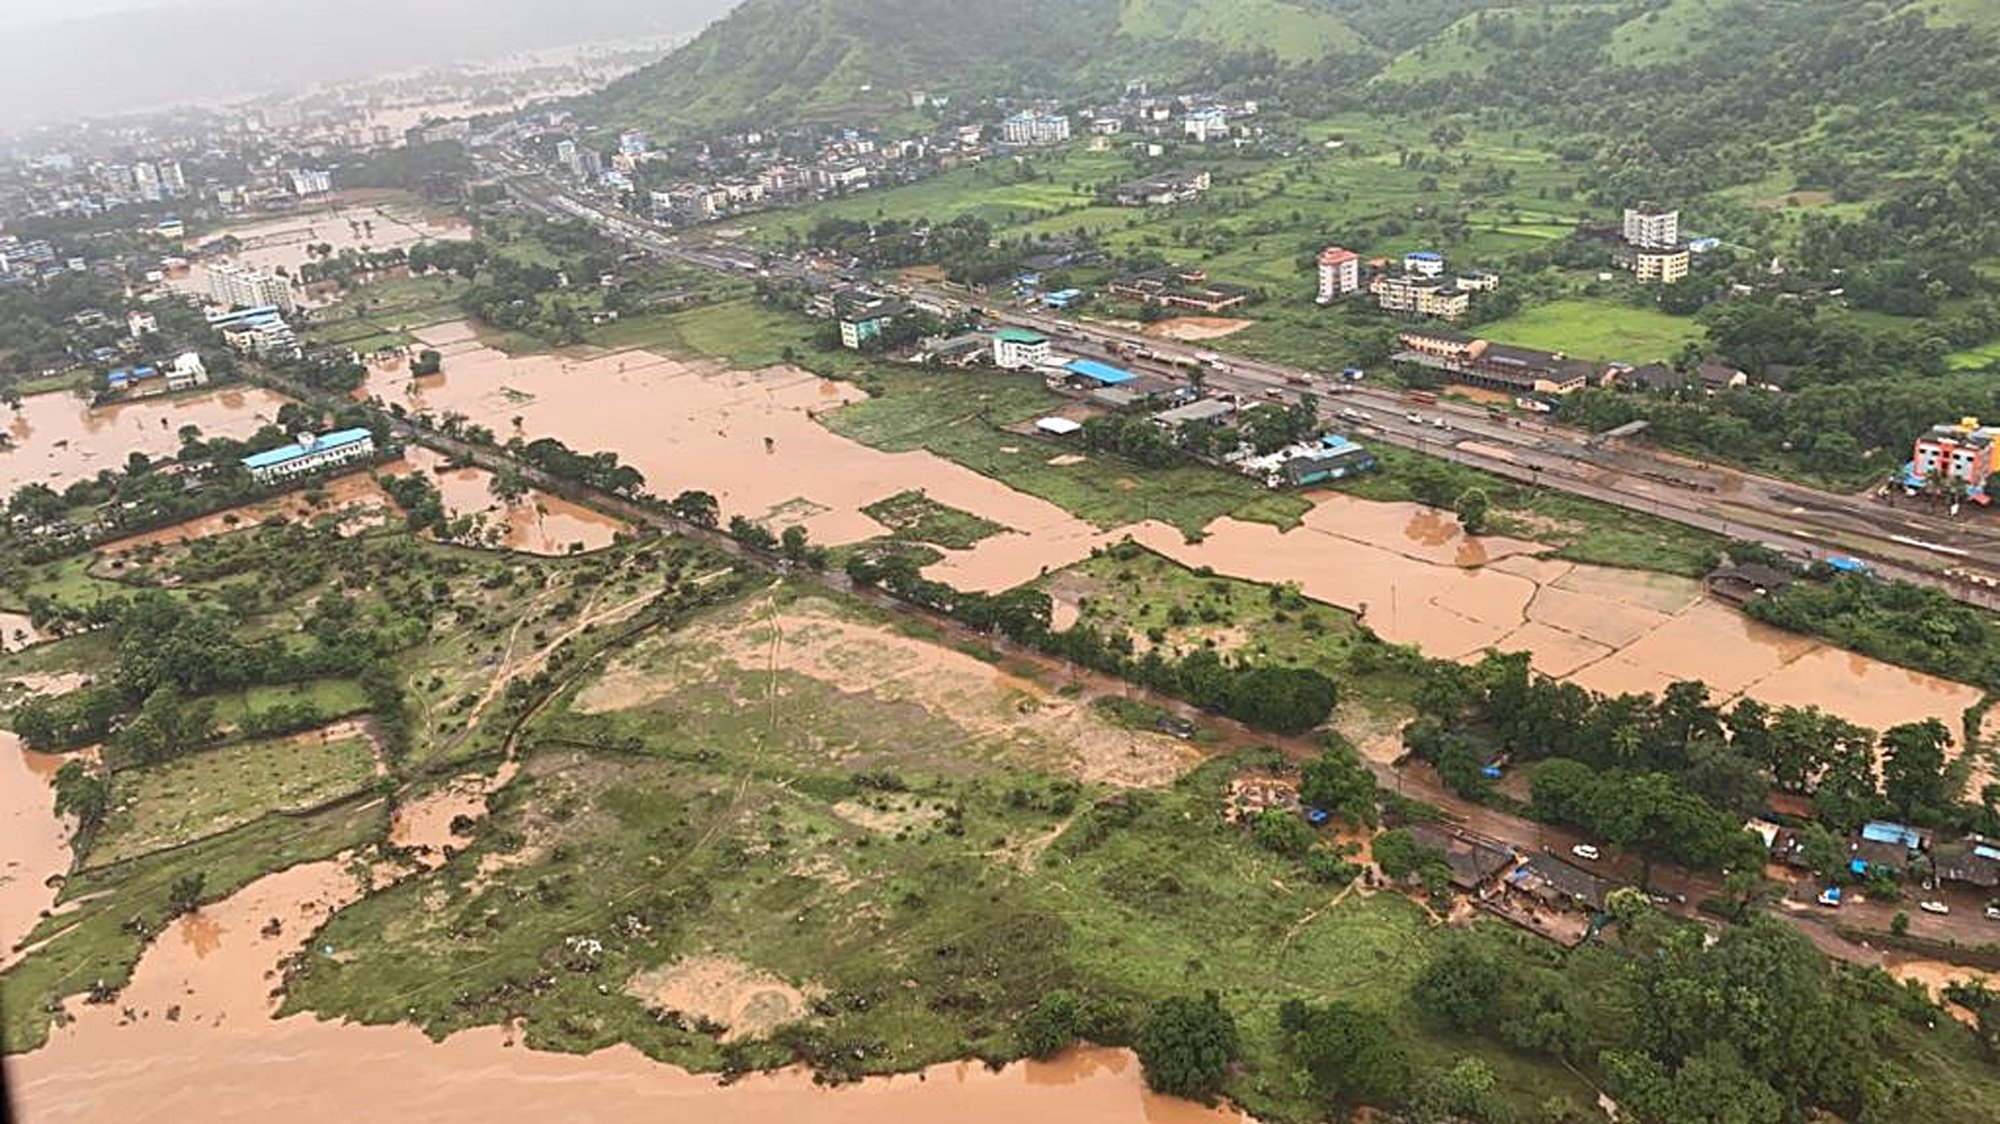 epa09359493 A handout photo made available by the Indian Navy while doing the helicopter sortie on 23 July 2021 shows an aerial view of the Raigad district, Maharashtra, India, 23 July 2021.  According to the district administration severe rainfall in Maharashtra killed at least 36 people and another 30 are feared trapped in three landslides in various areas.  EPA/INDIAN NAVY HANDOUT  HANDOUT EDITORIAL USE ONLY/NO SALES